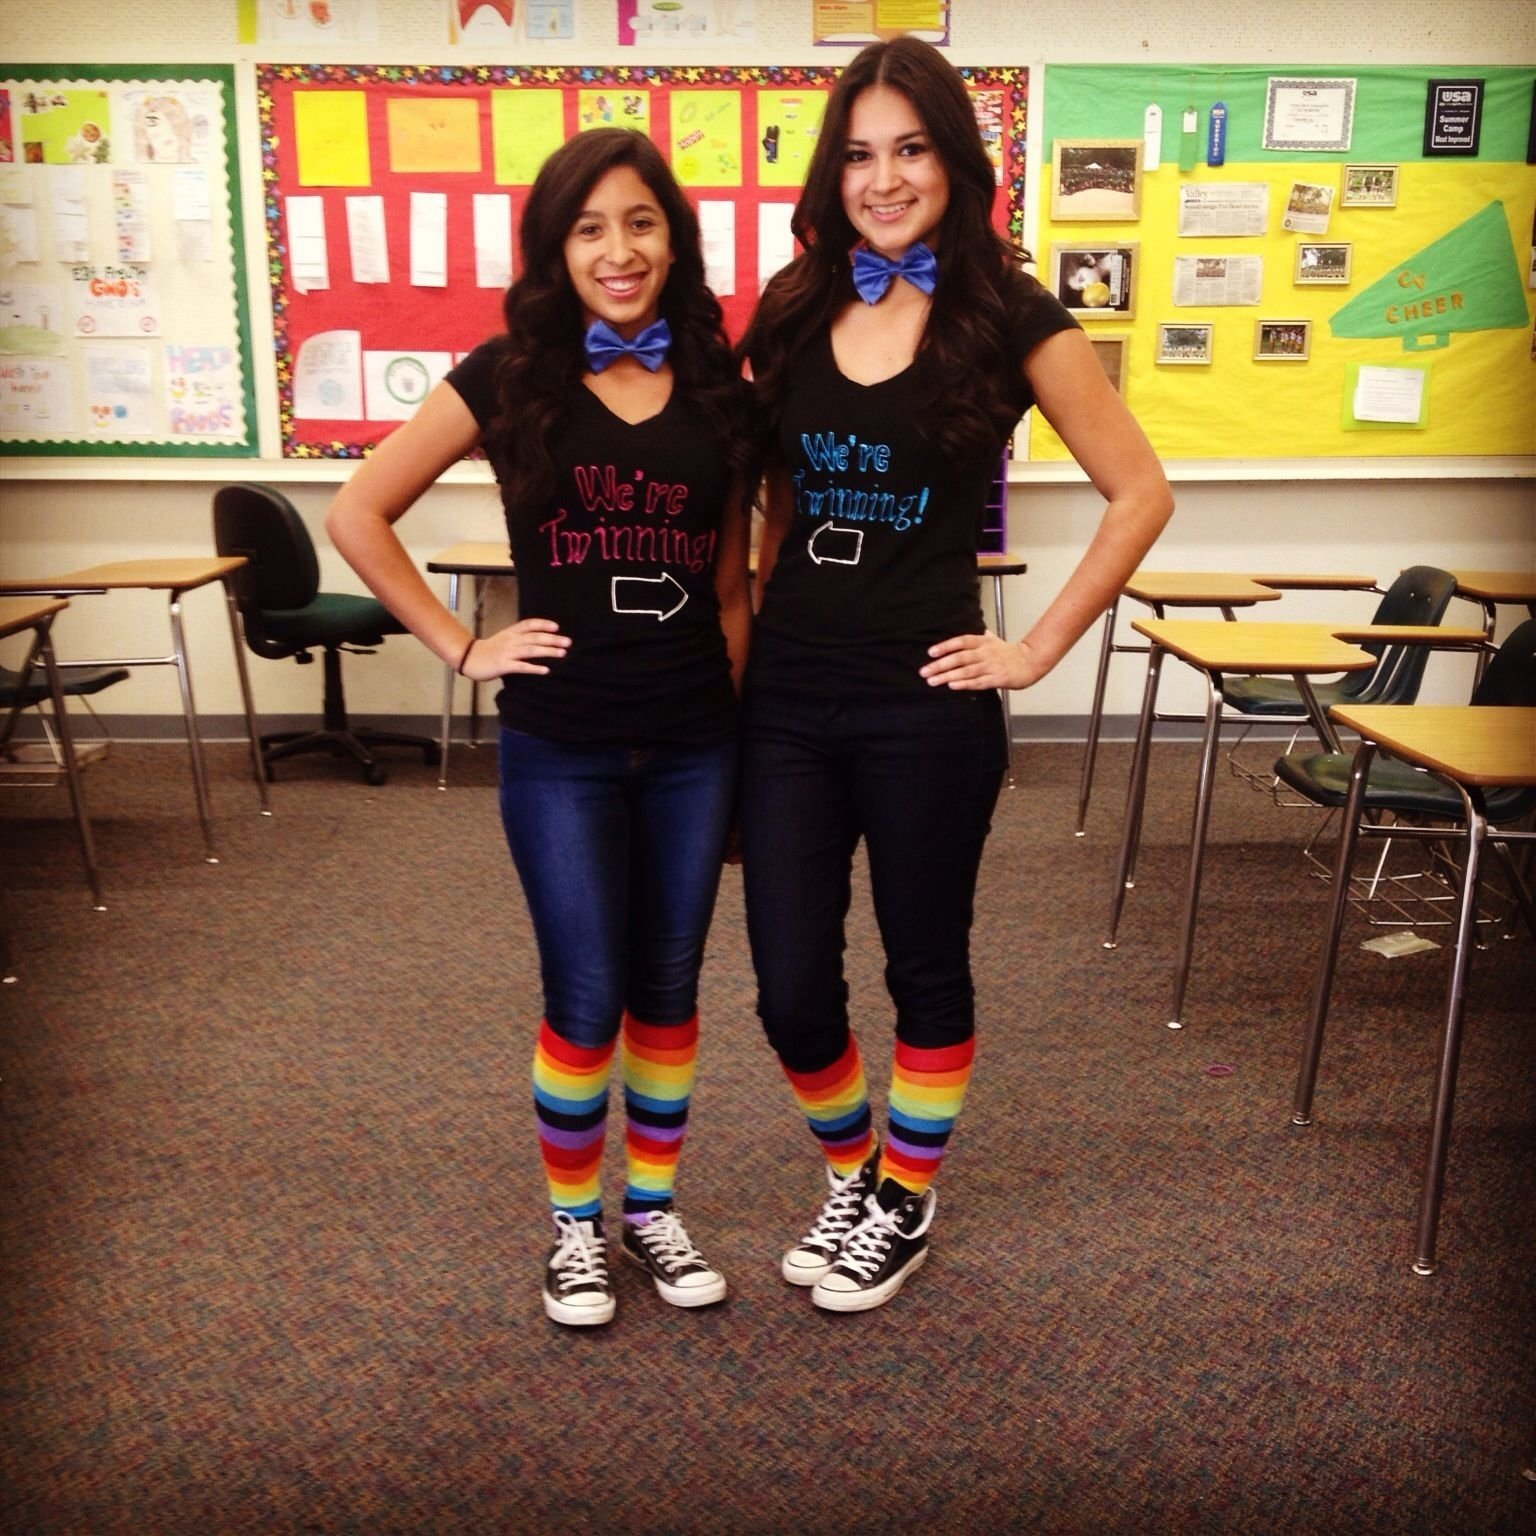 10 Best Spirit Week Twin Day Ideas twin day spirit week at school my lifee29da4 pinterest twins 15